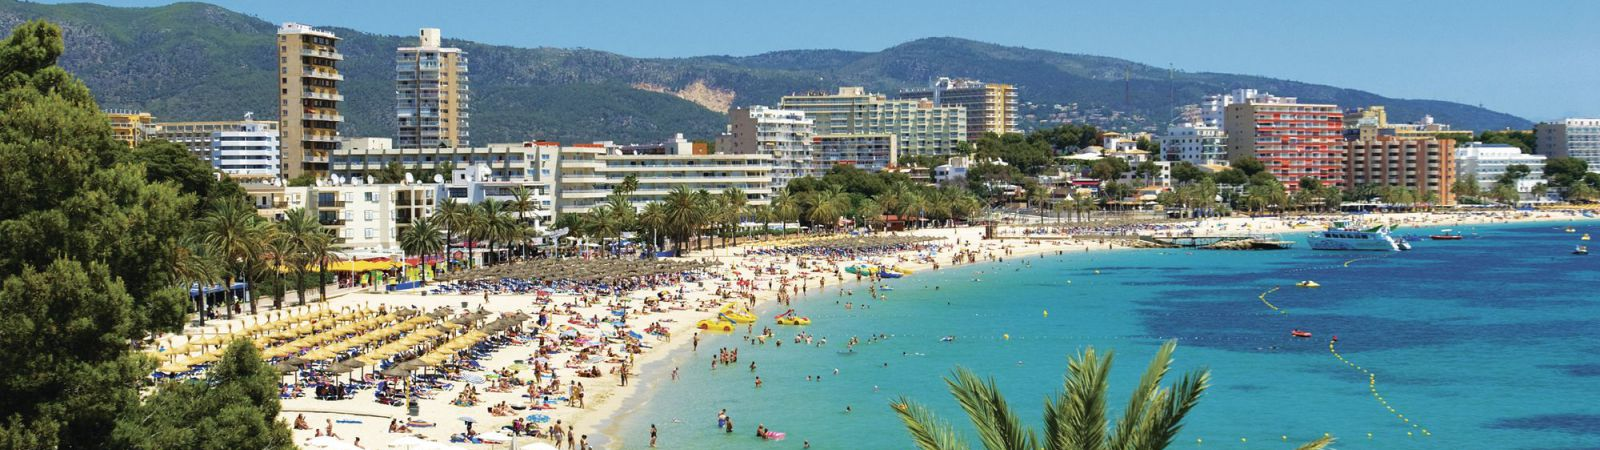 Magaluf strand